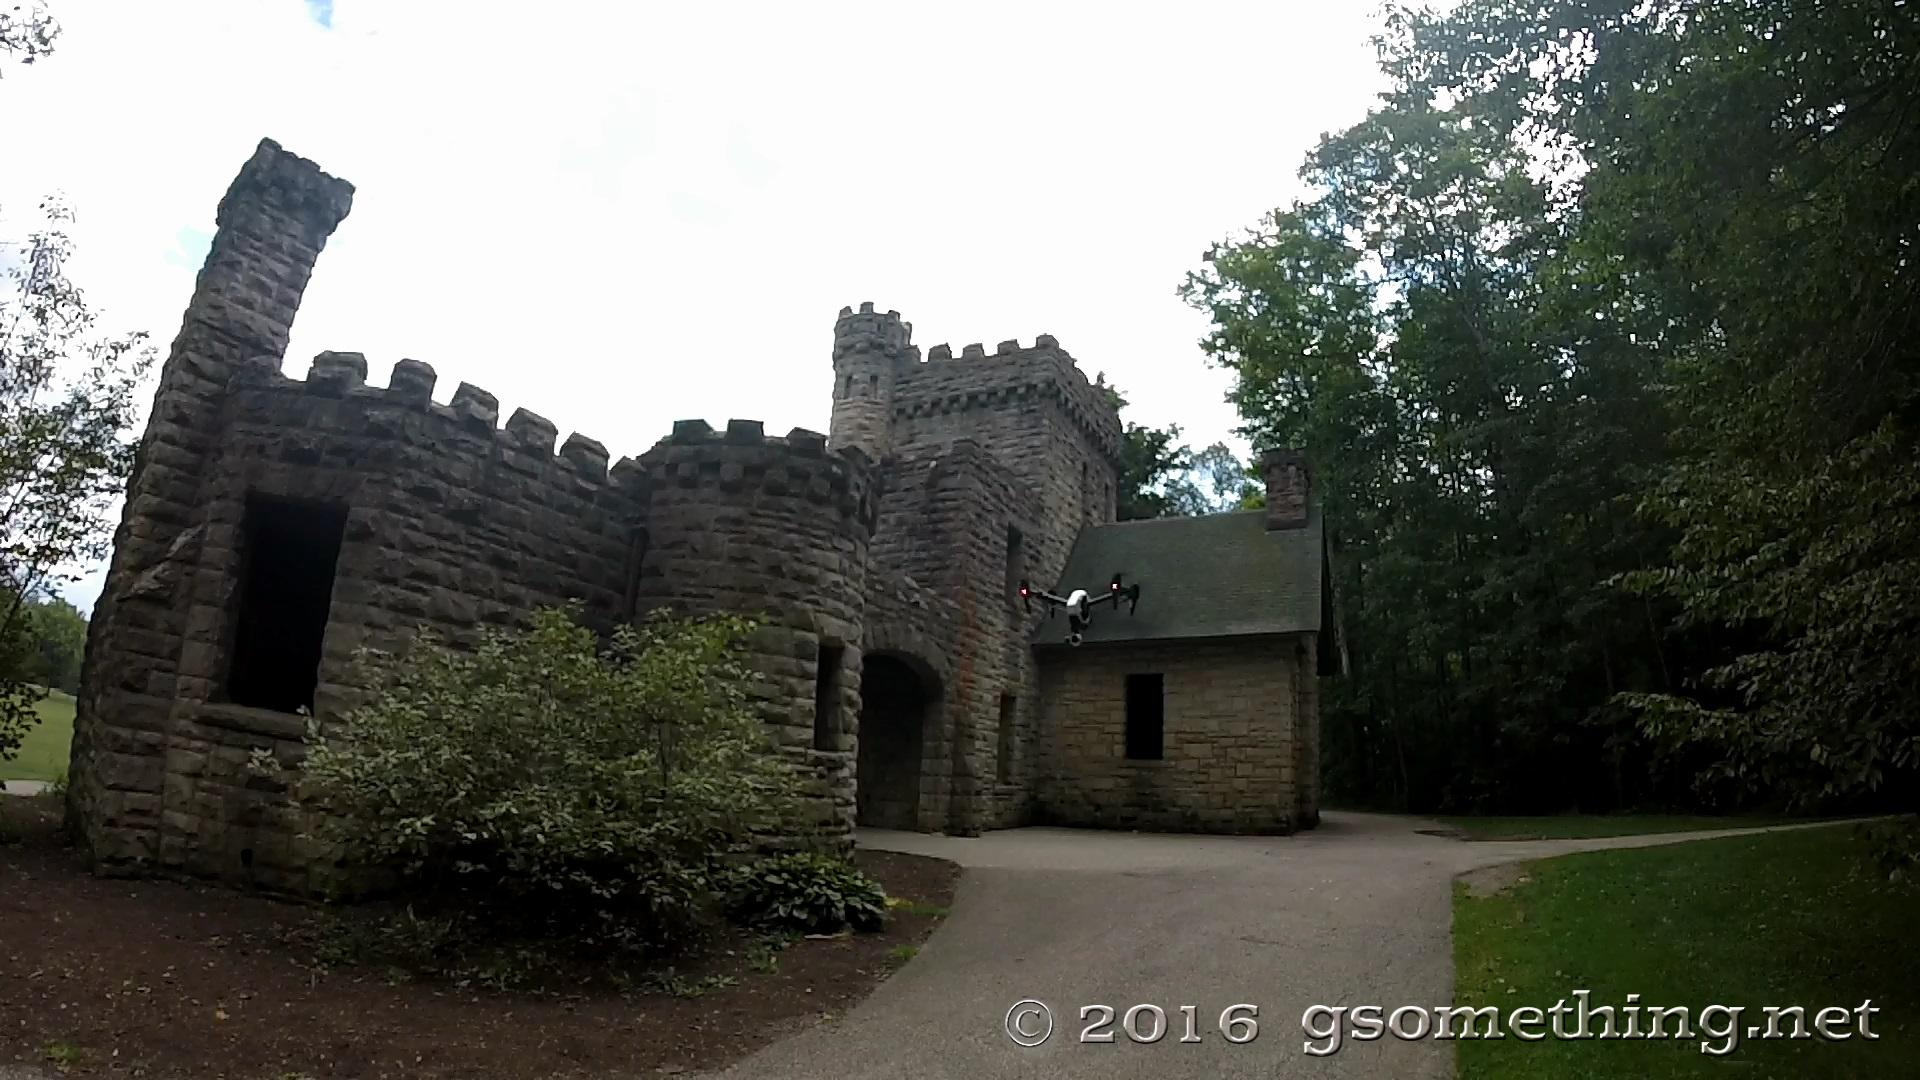 squires_castle_1.jpg